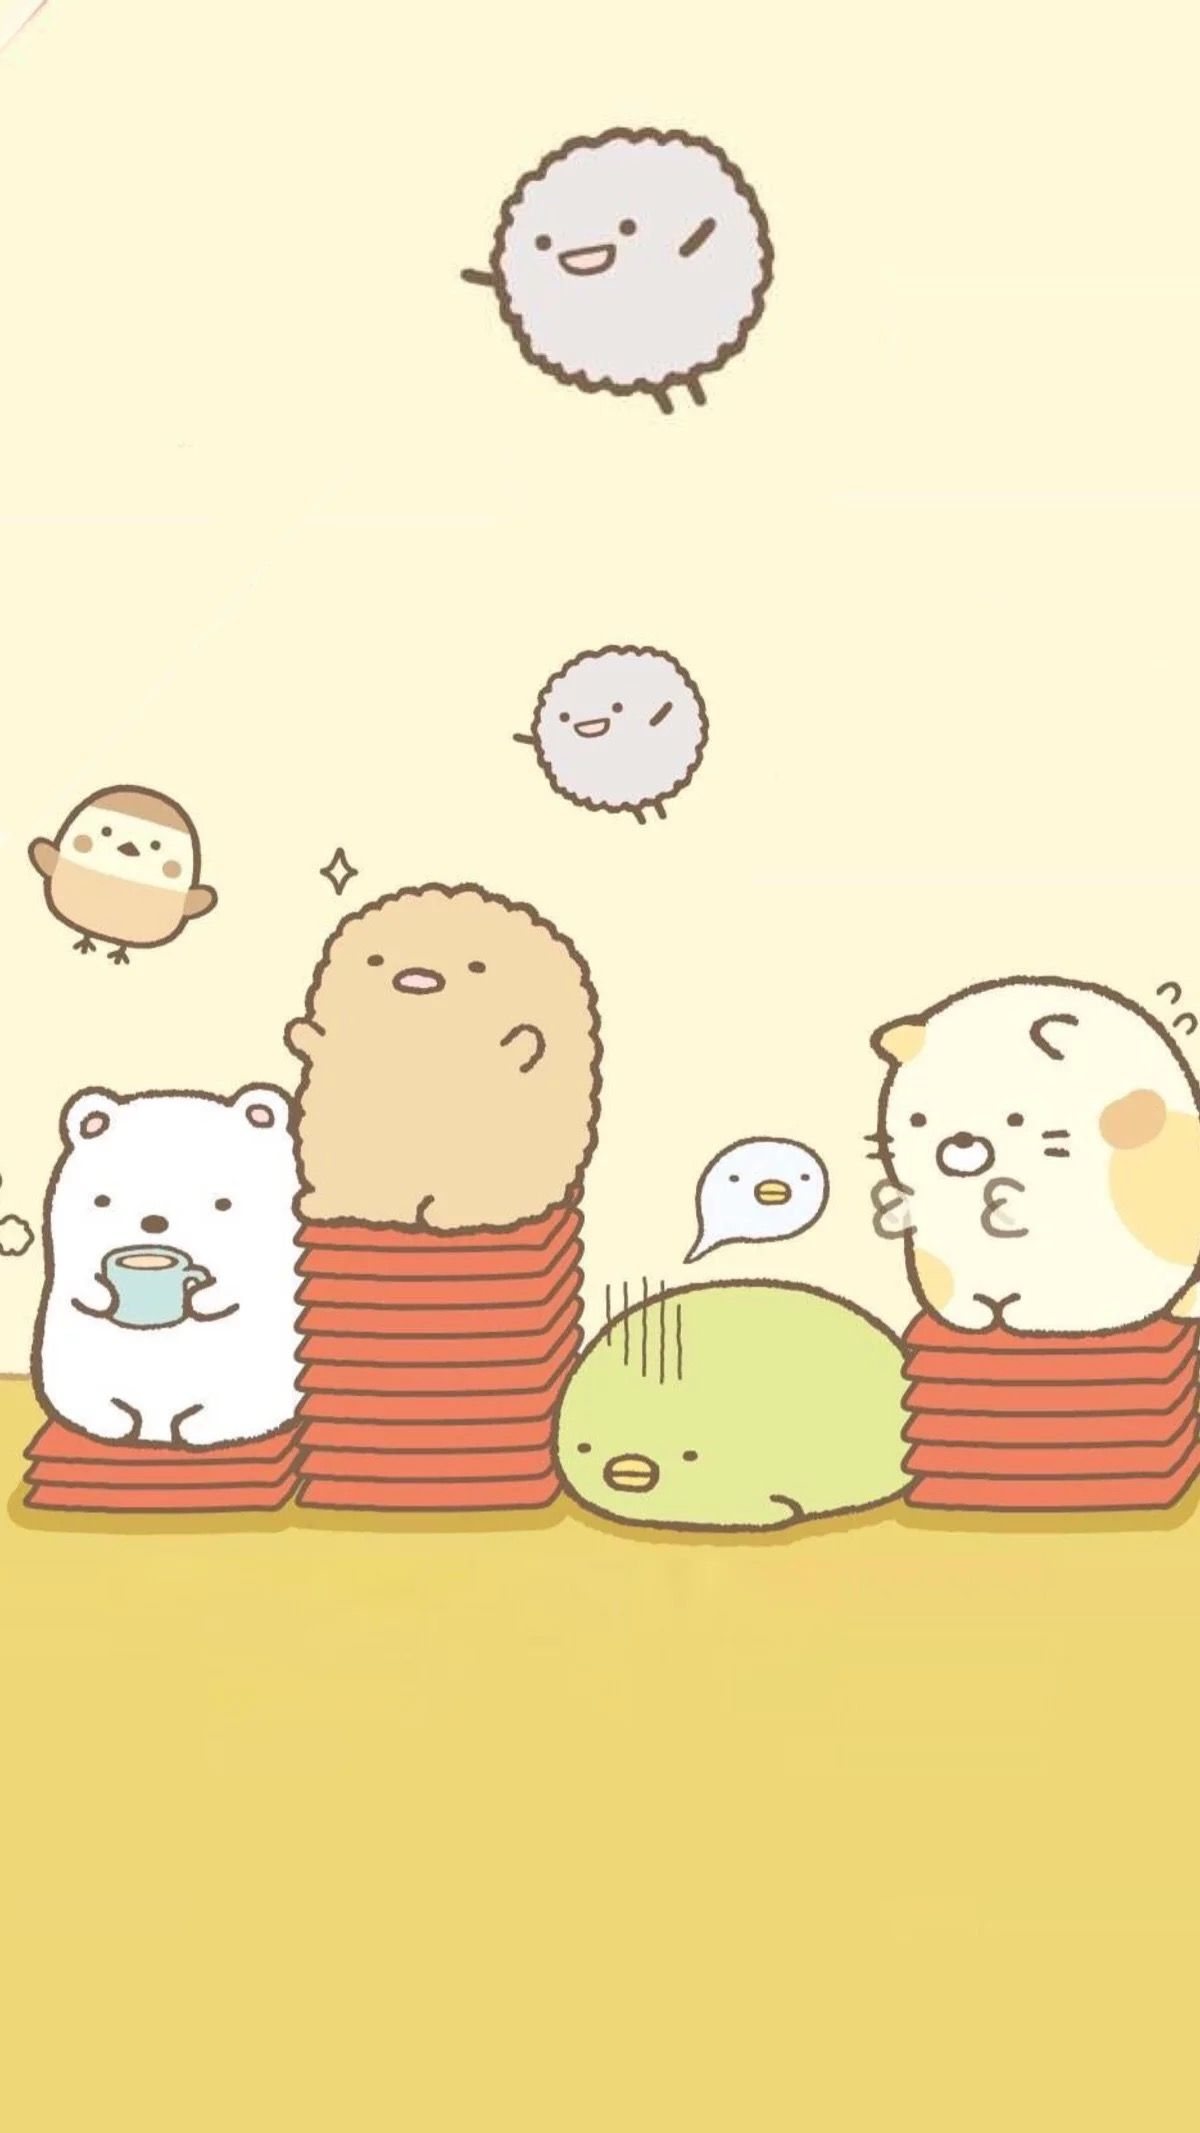 Sumikko gurashi phone wallpaper cute cartoons kawaii - Cute asian cartoon wallpaper ...